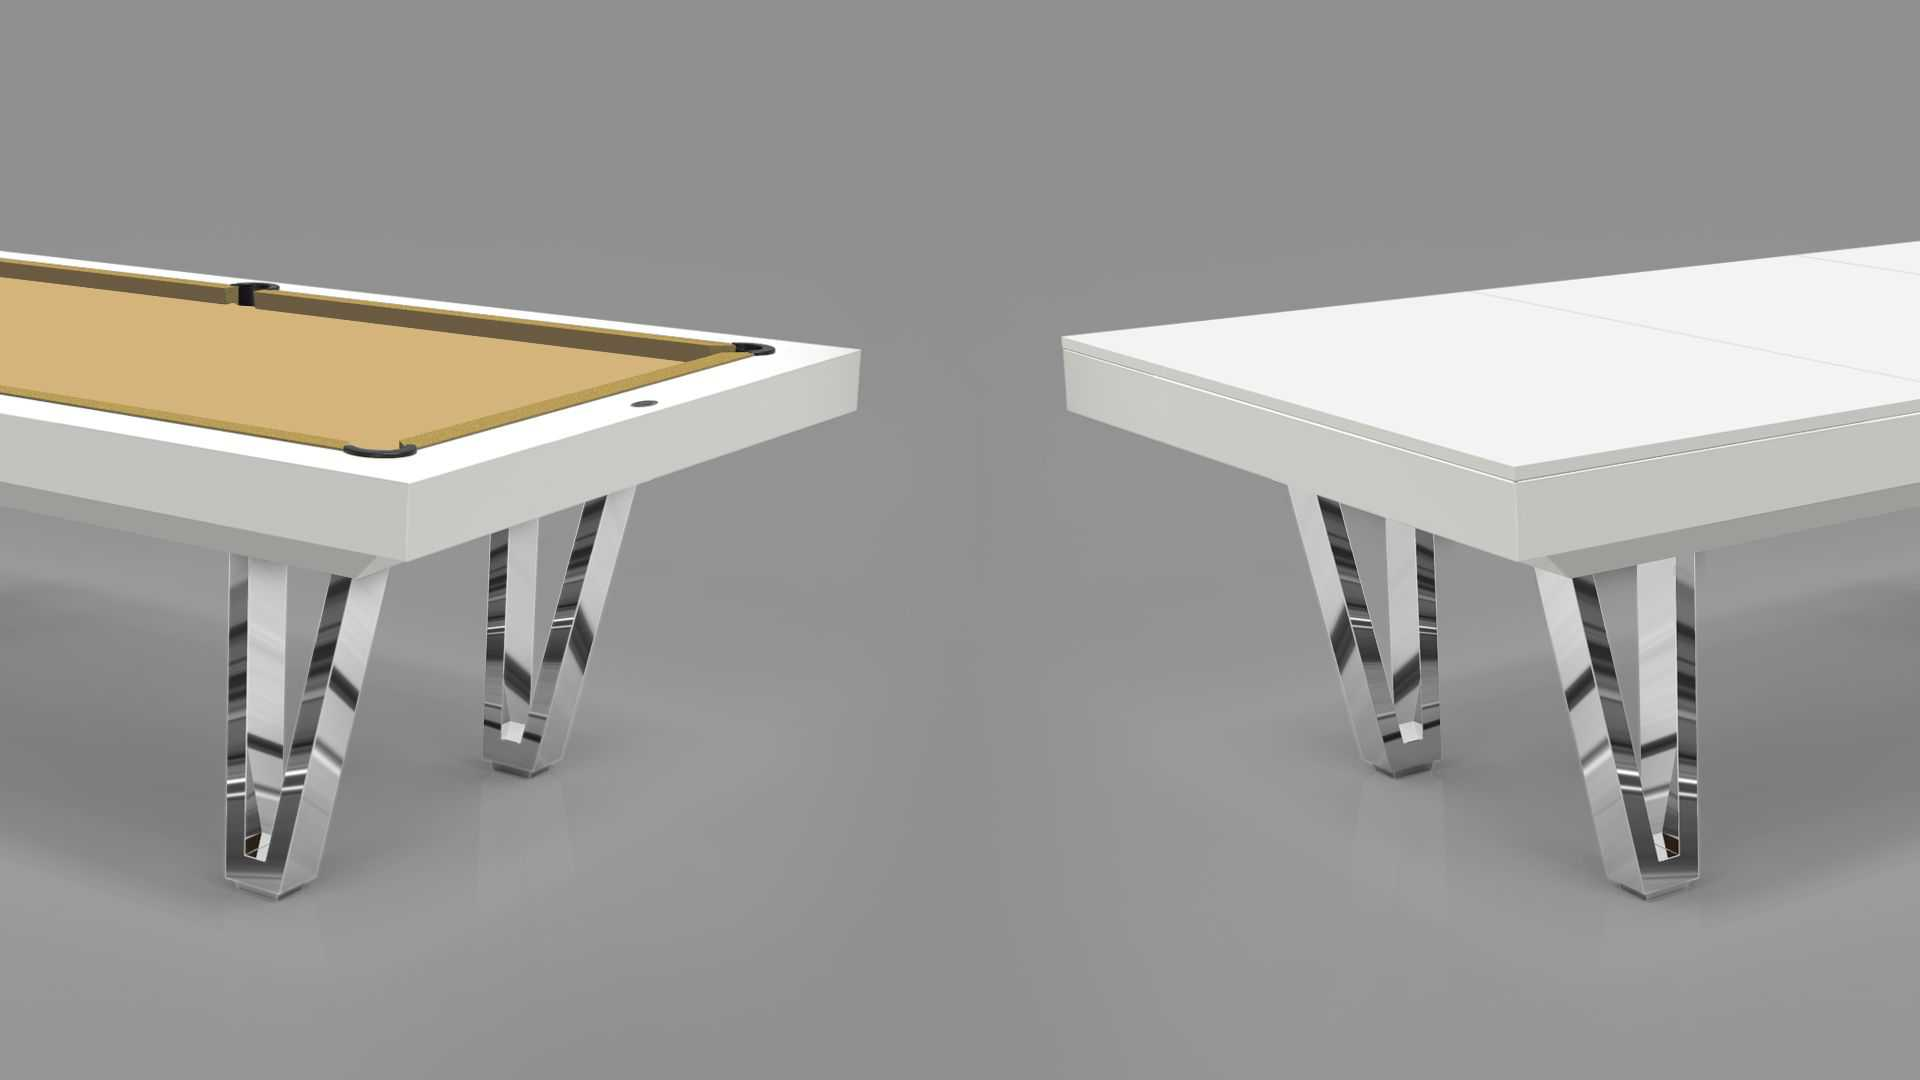 Pool Table mod. Cayenne Two Lacquered metal bases 2